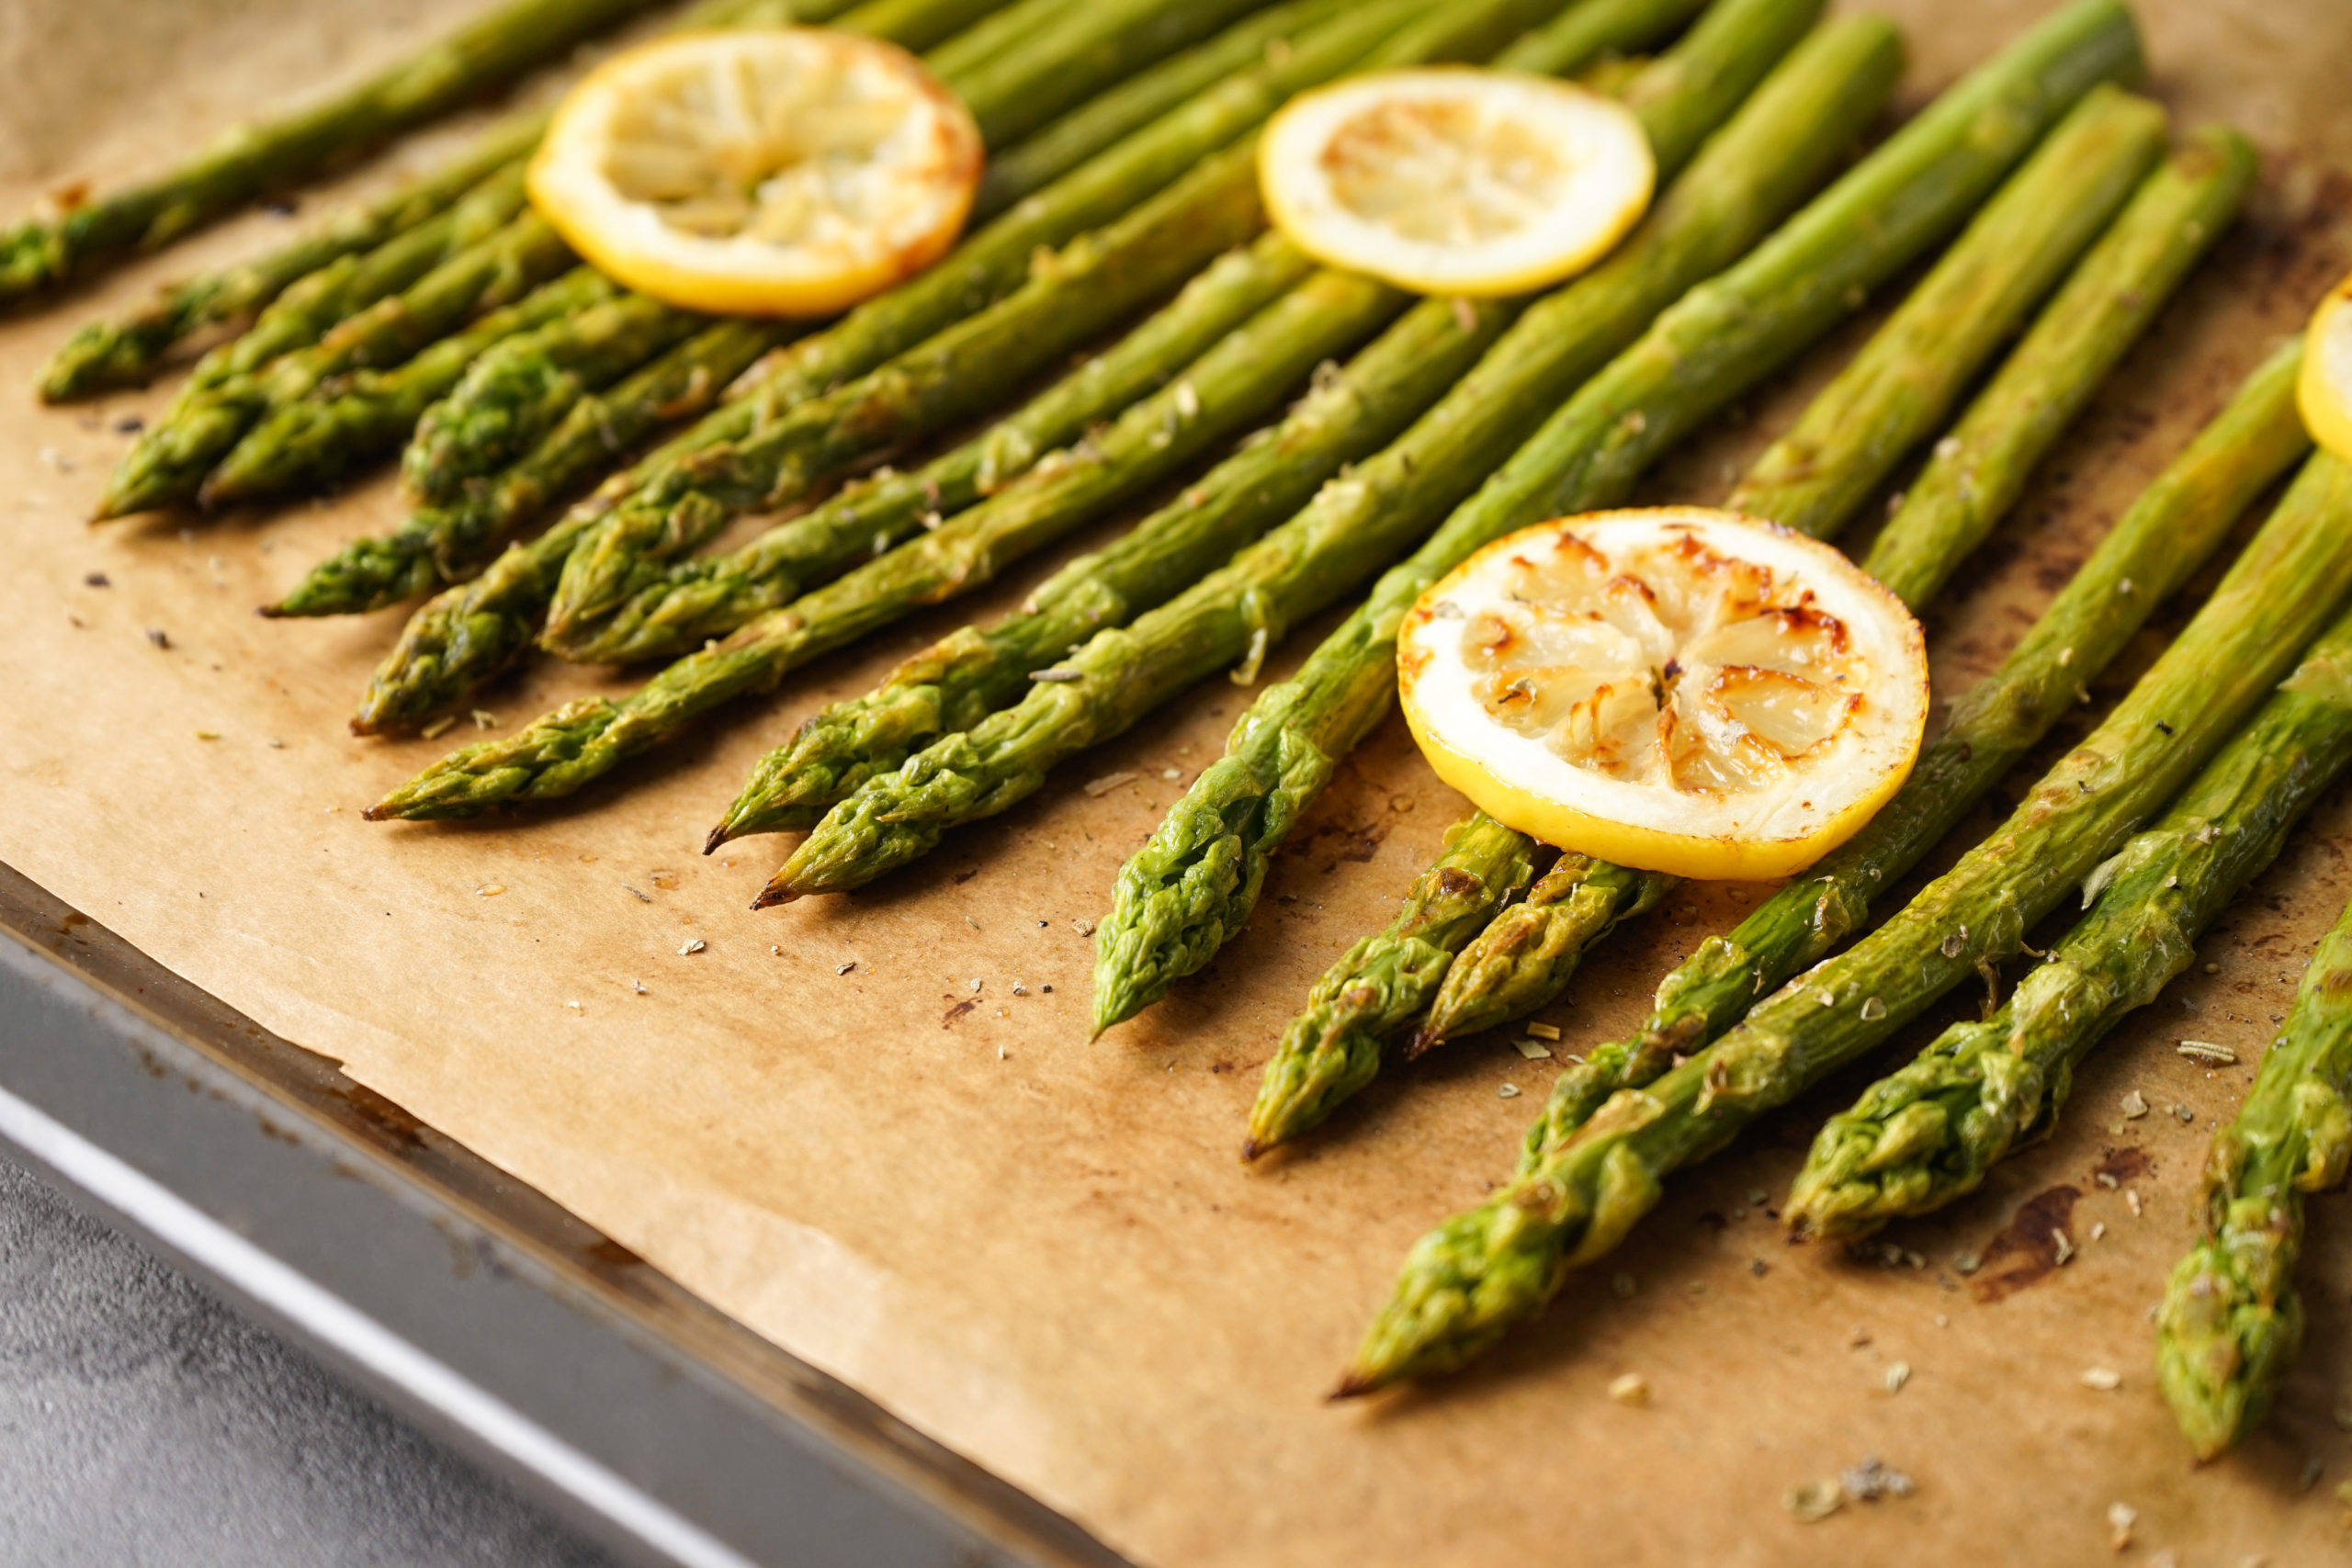 How Long to Cook Asparagus in Oven